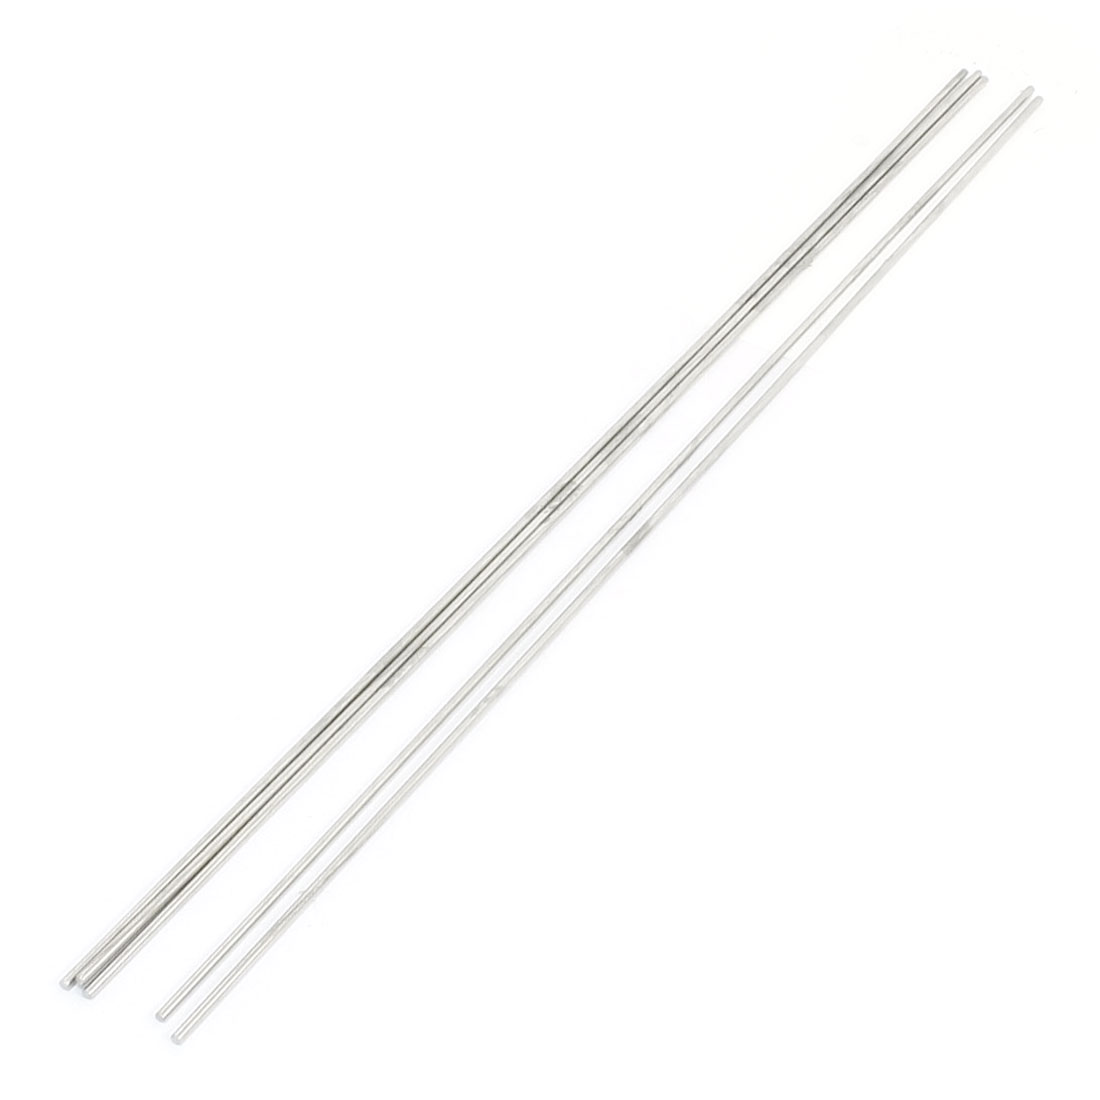 5Pcs RC Airplane Hardware Tool Stainless Steel Round Rod 400mm x 2.5mm